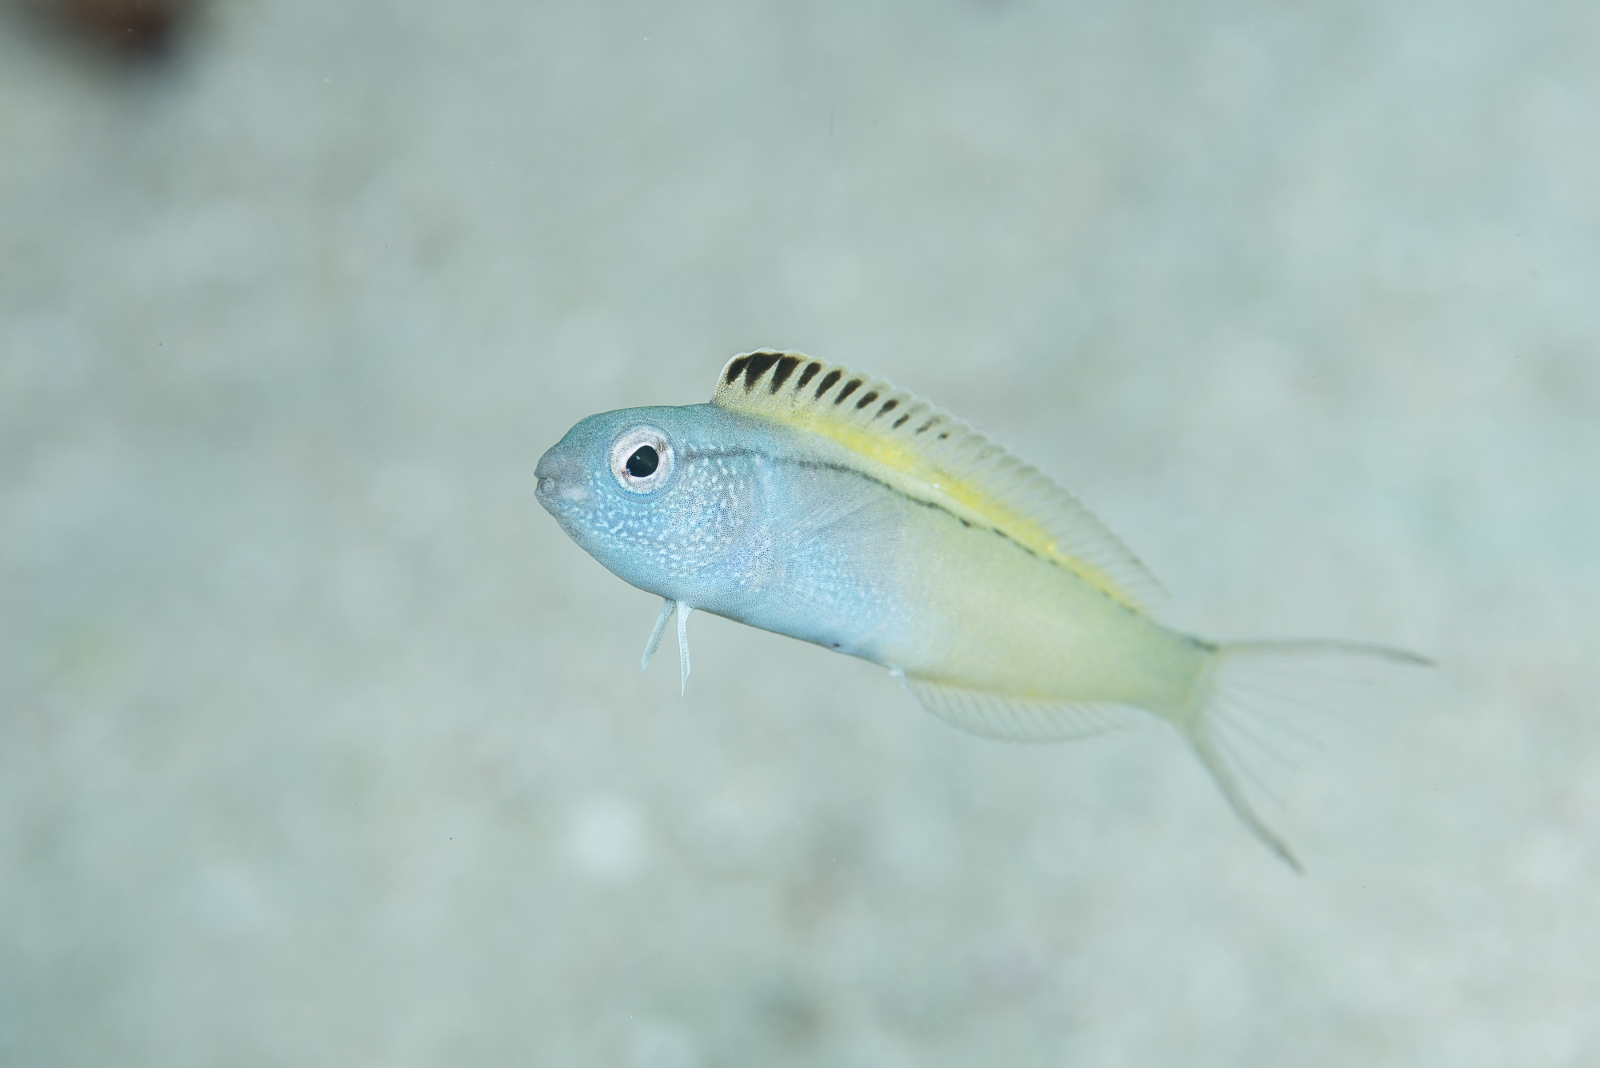 This fish gets predators high so it can escape